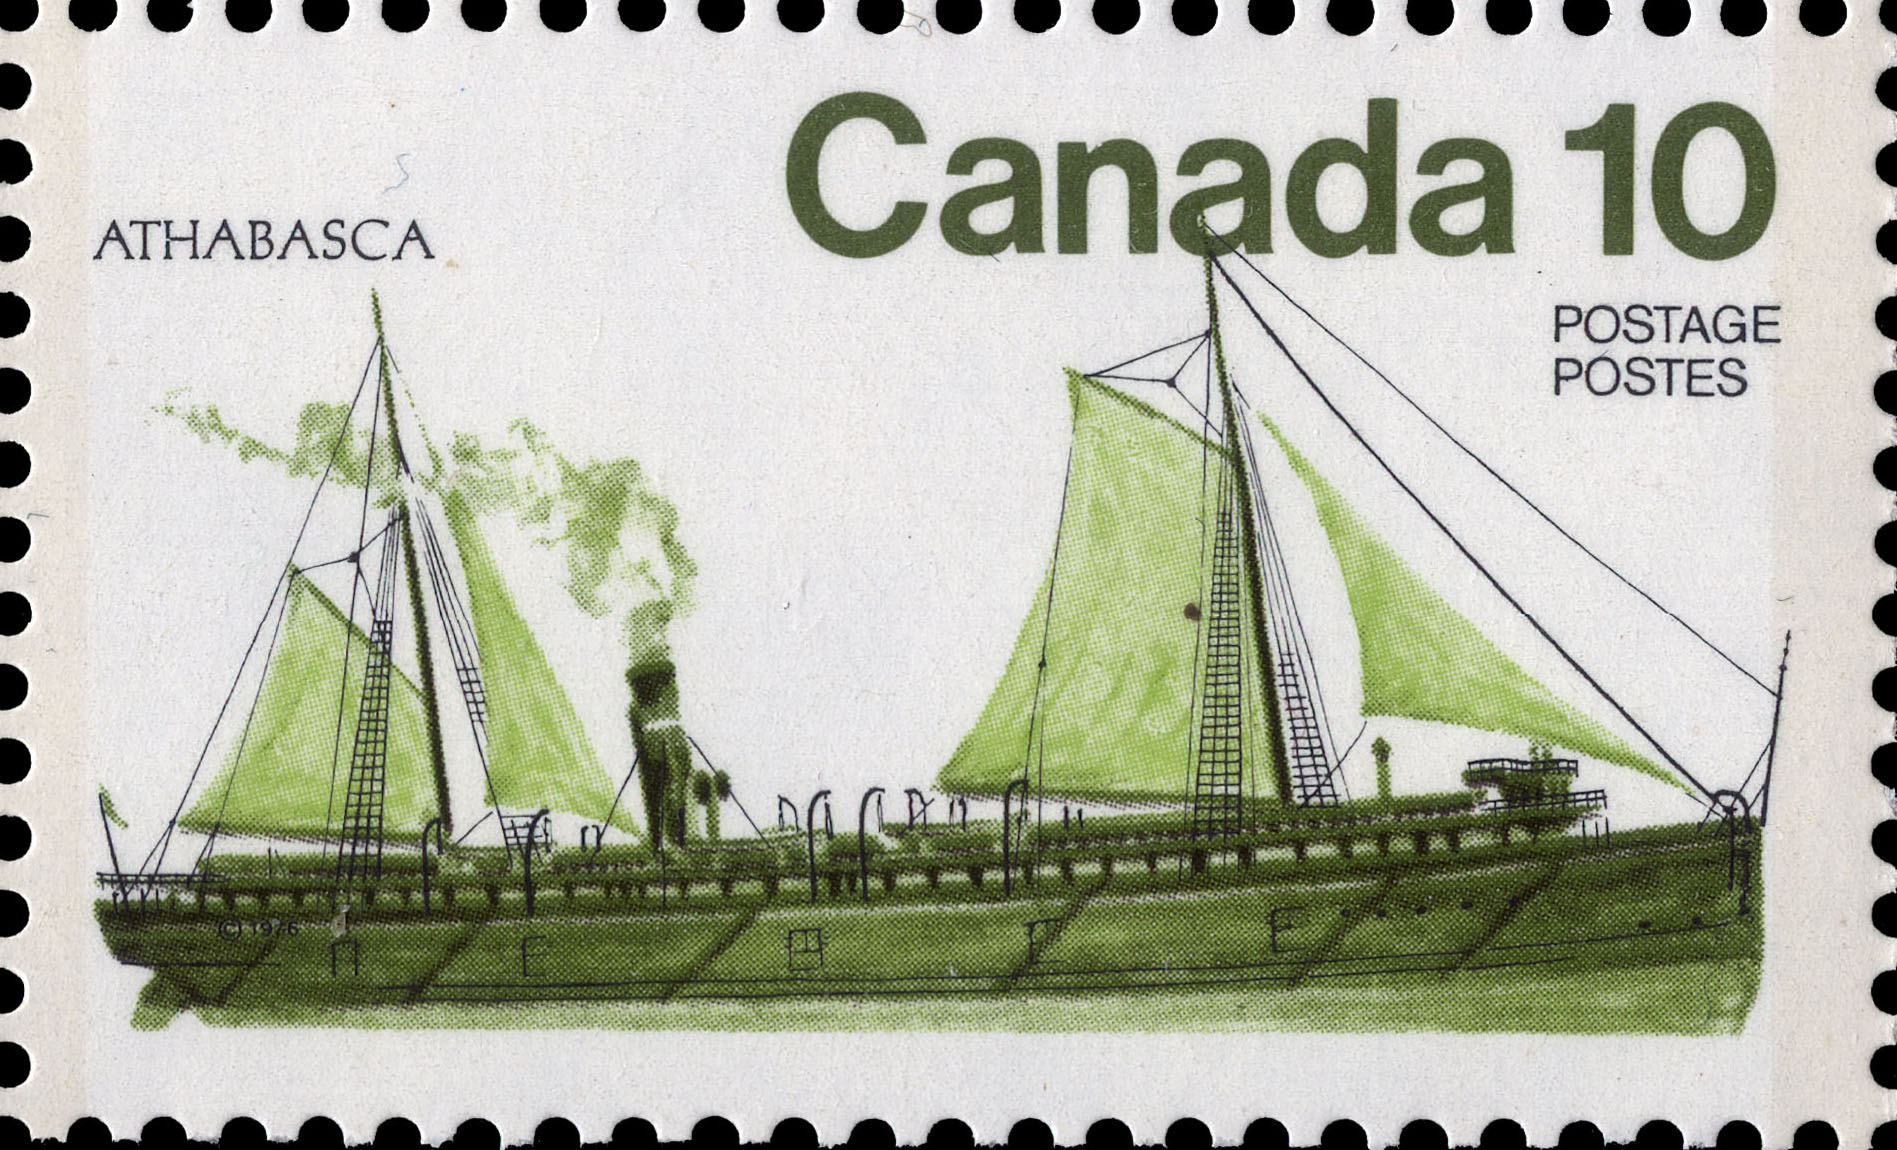 Athabasca Canada Postage Stamp